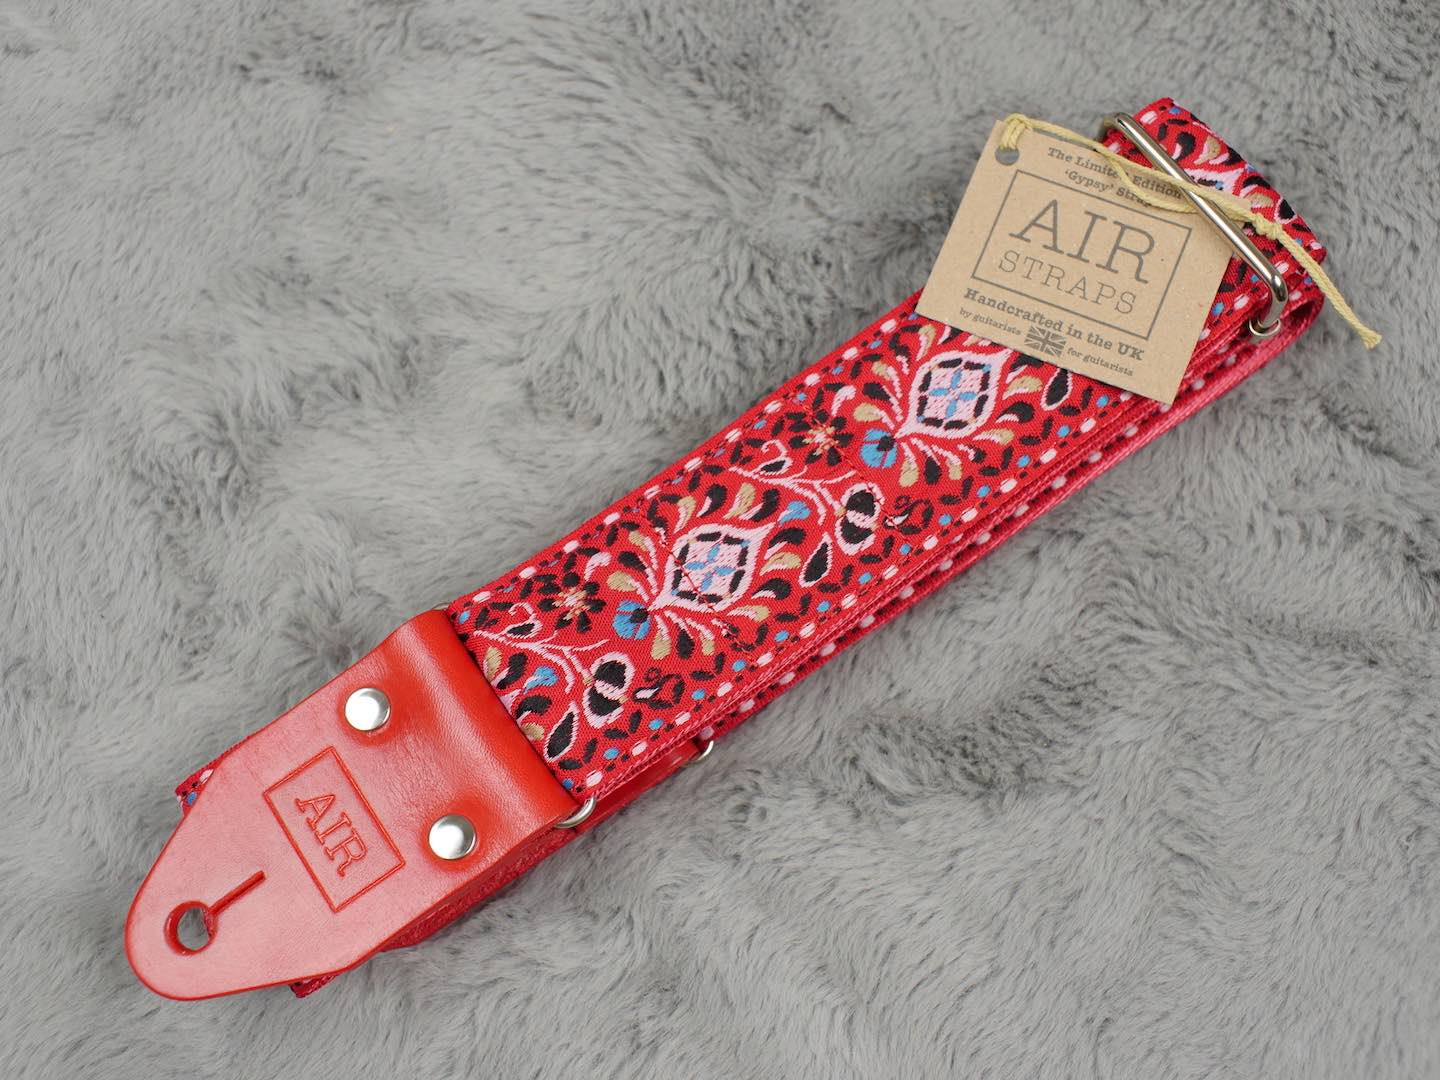 Air Straps Limited Edition 'Gypsy' Guitar Strap - Free Shipping!